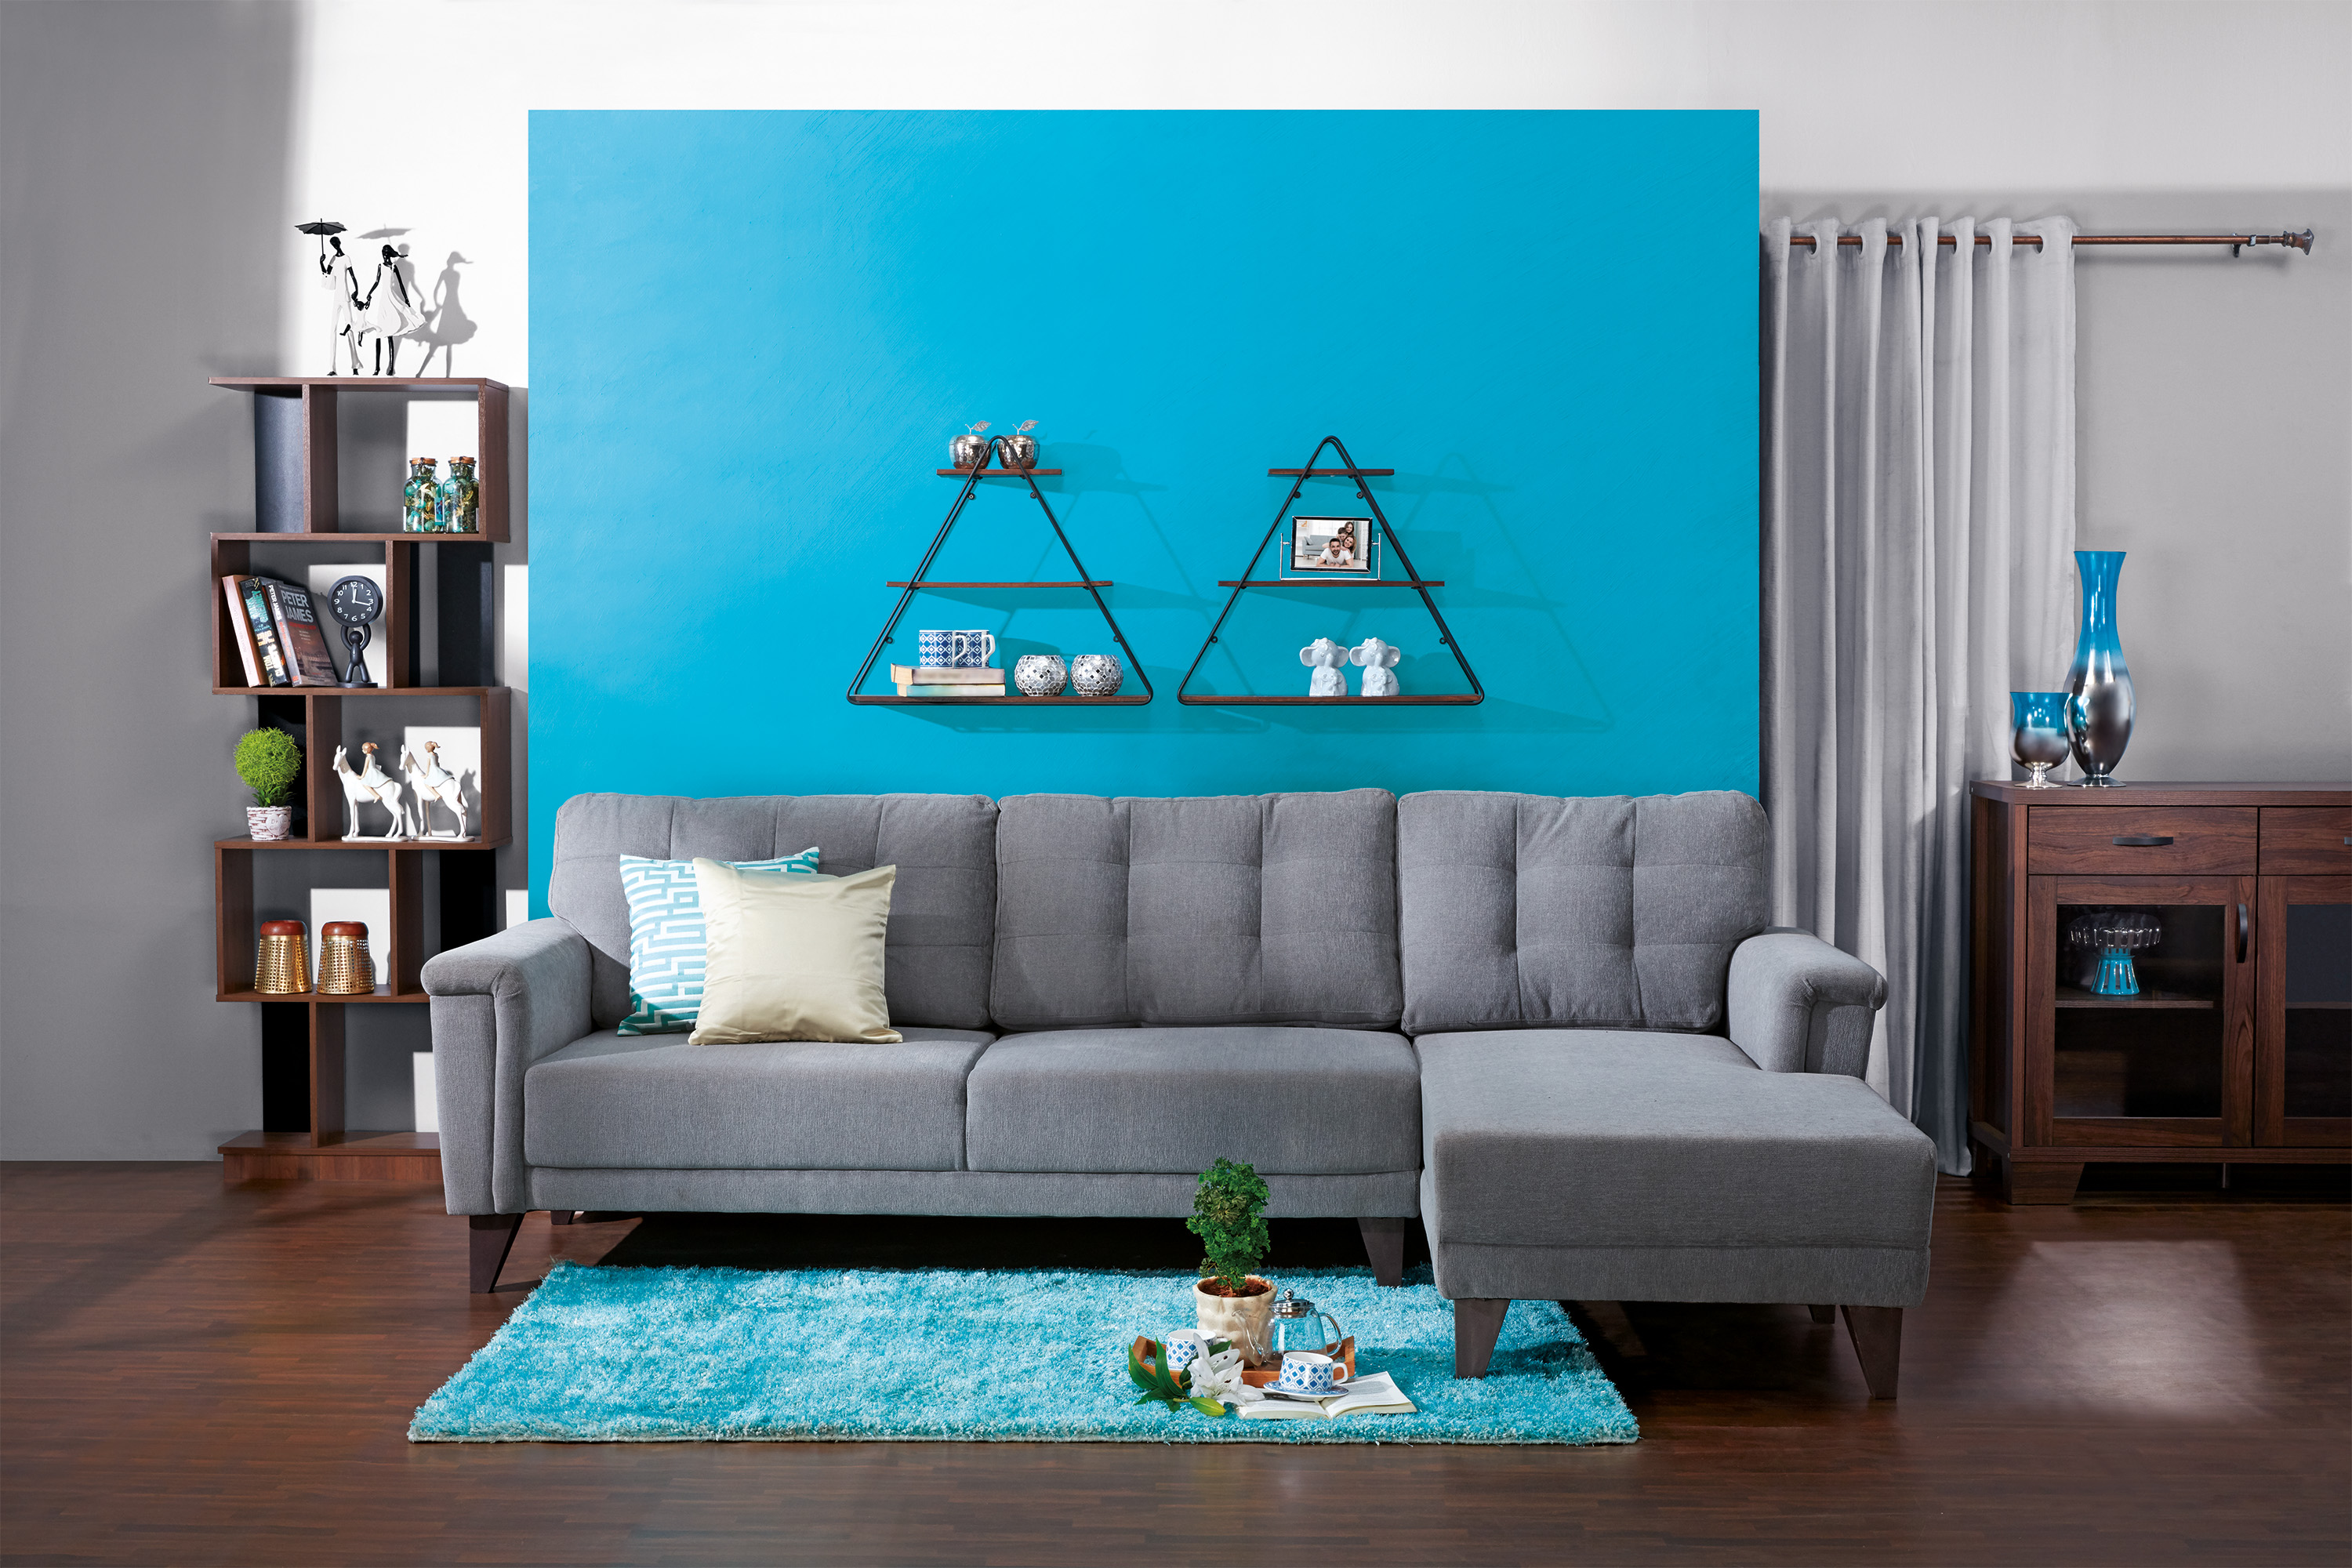 5 awesome decor tips to give a turquoise makeover to your home